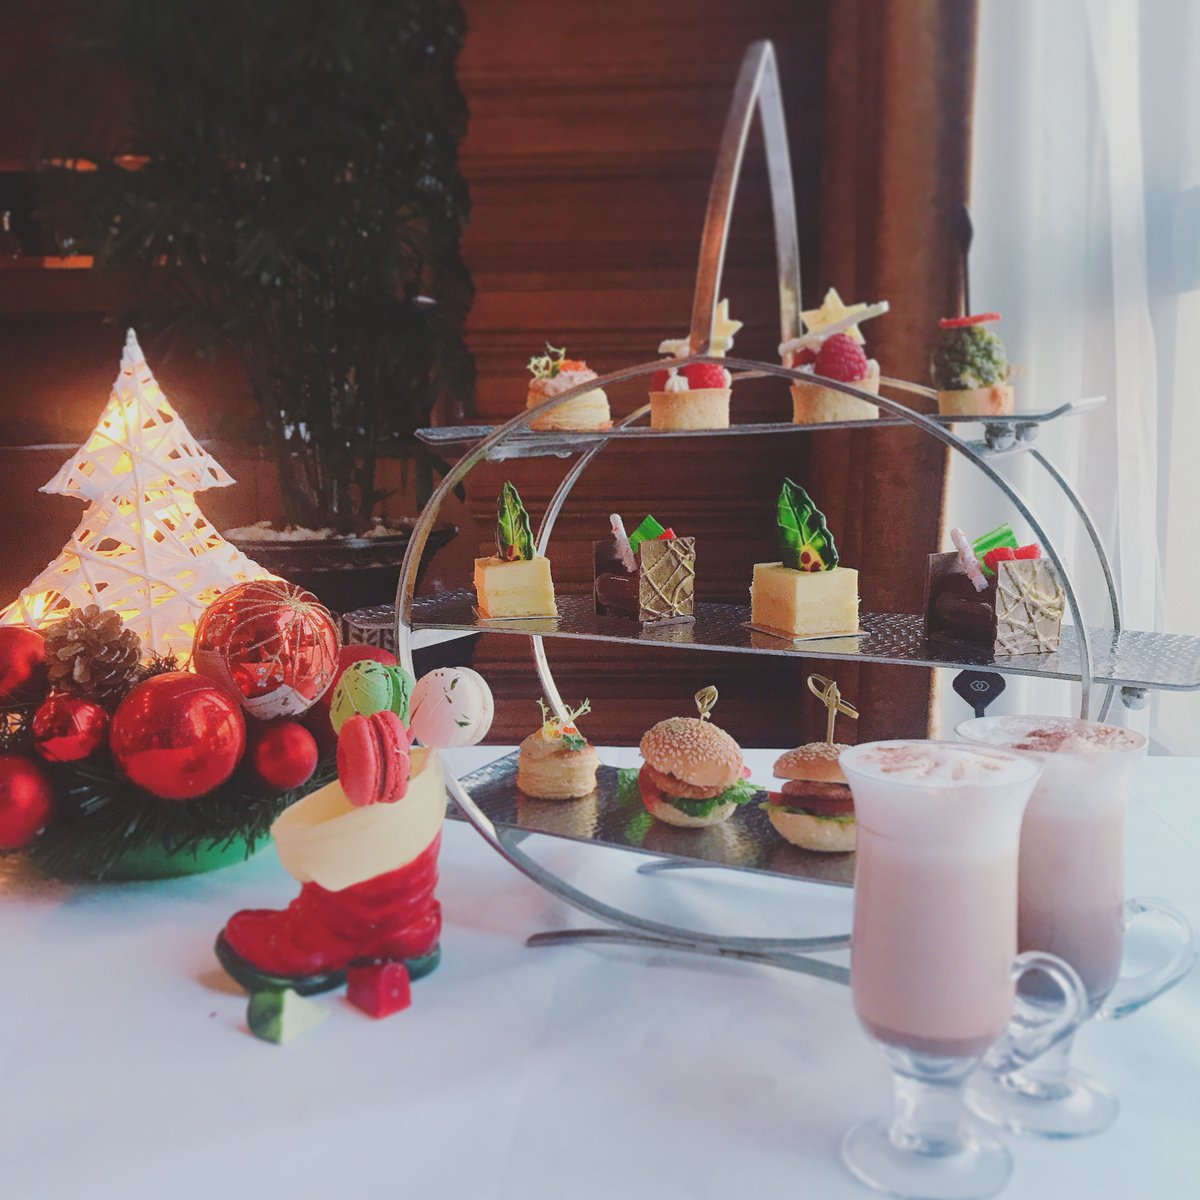 Have a nice afternoon tea set in this winter https://t.co/2BArhqaC7R